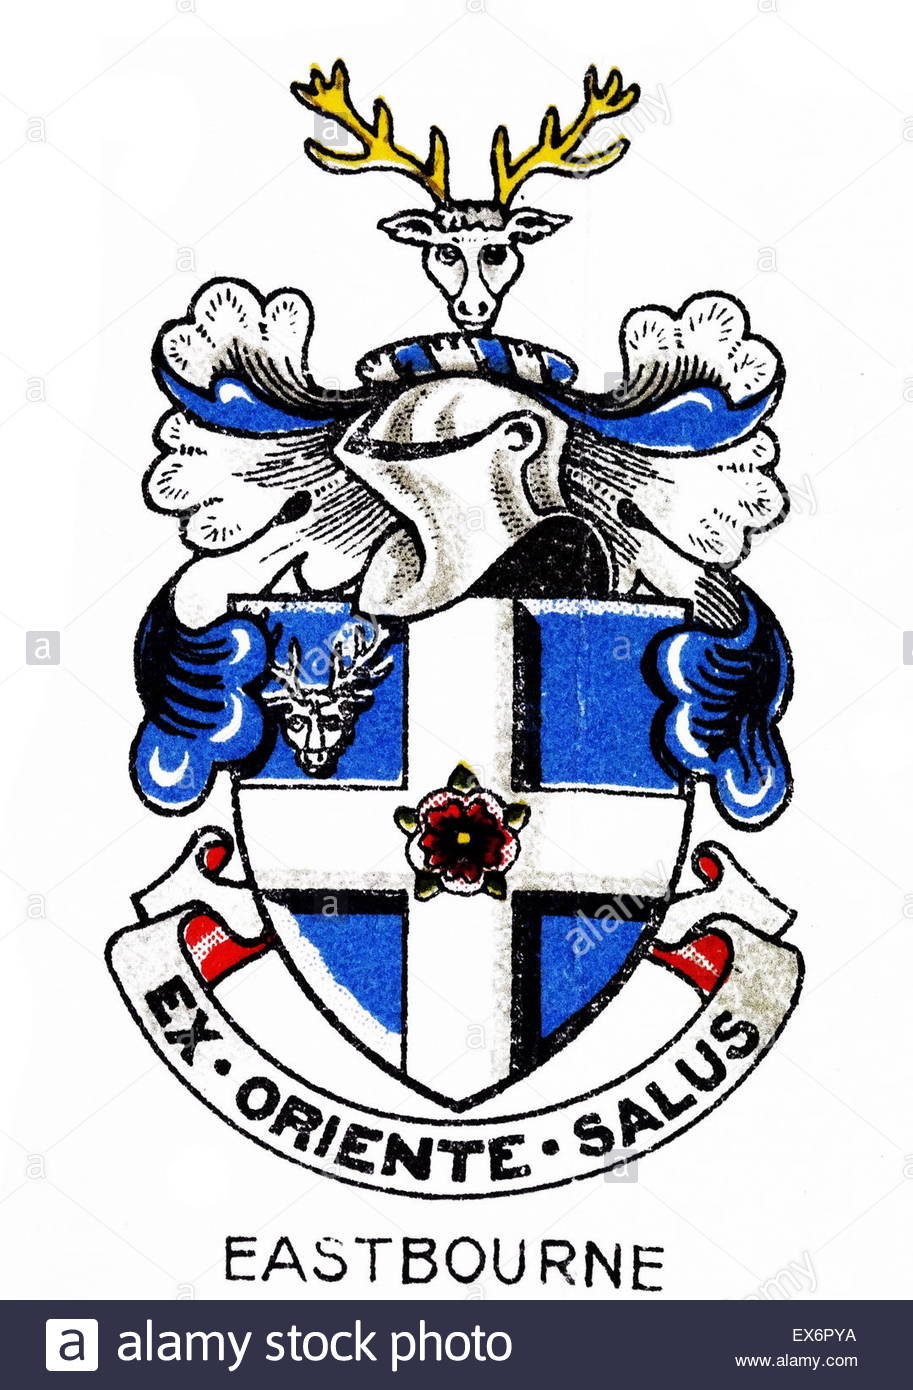 Emblem Of Eastbourne College, Eastbourne, East Sussex Is A British.